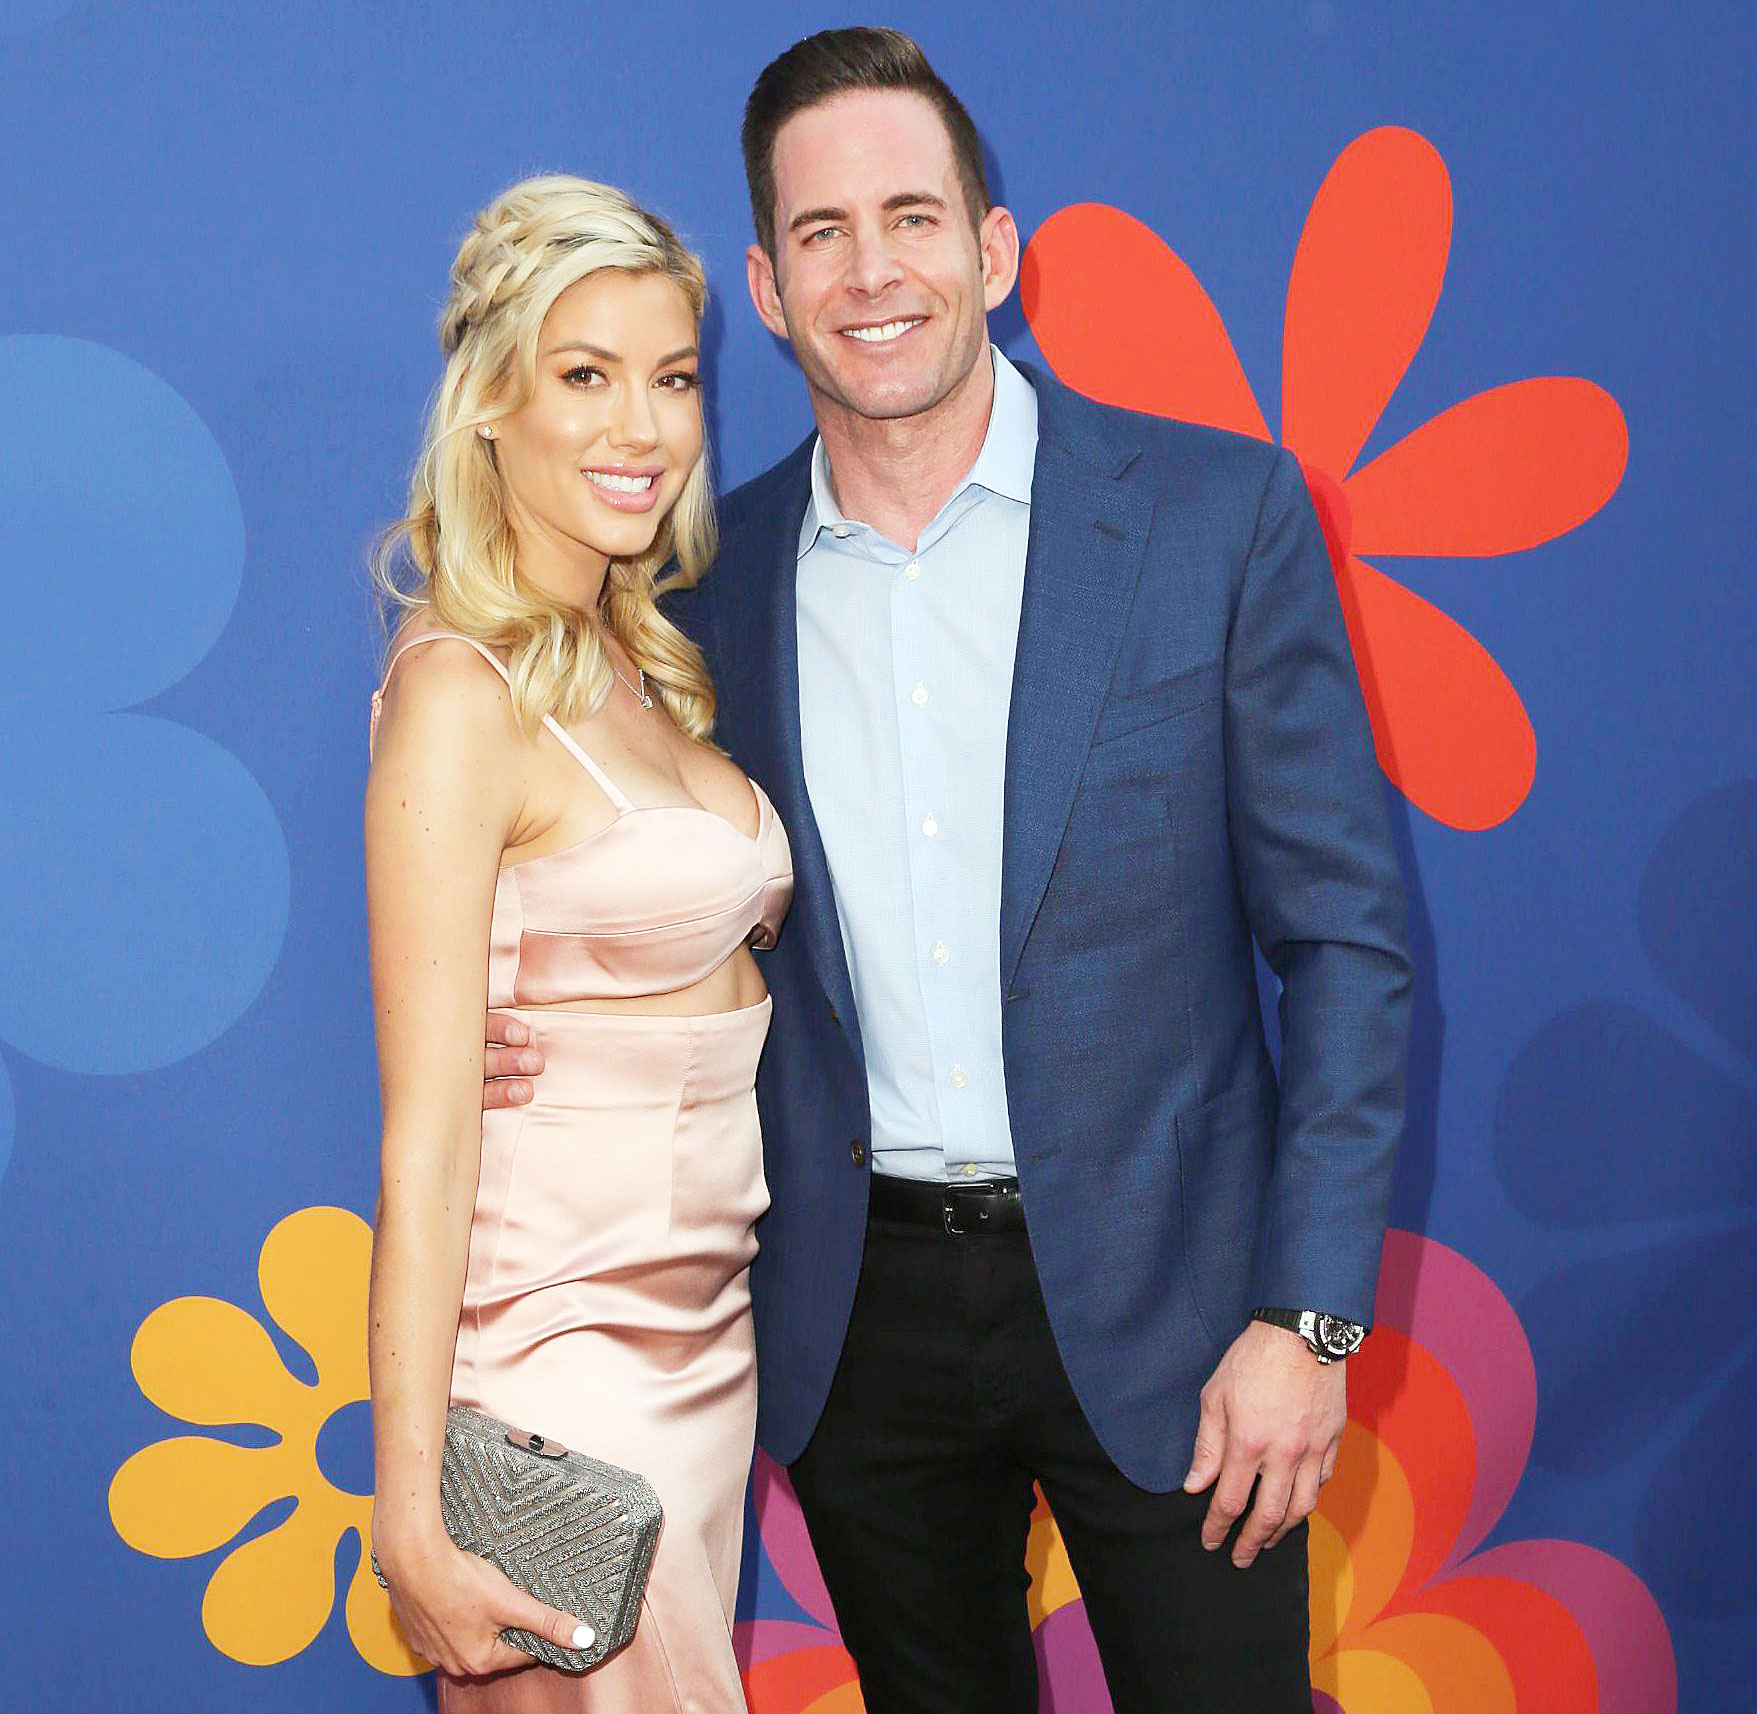 Tarek El Moussa and Heather Rae Young Move In Together